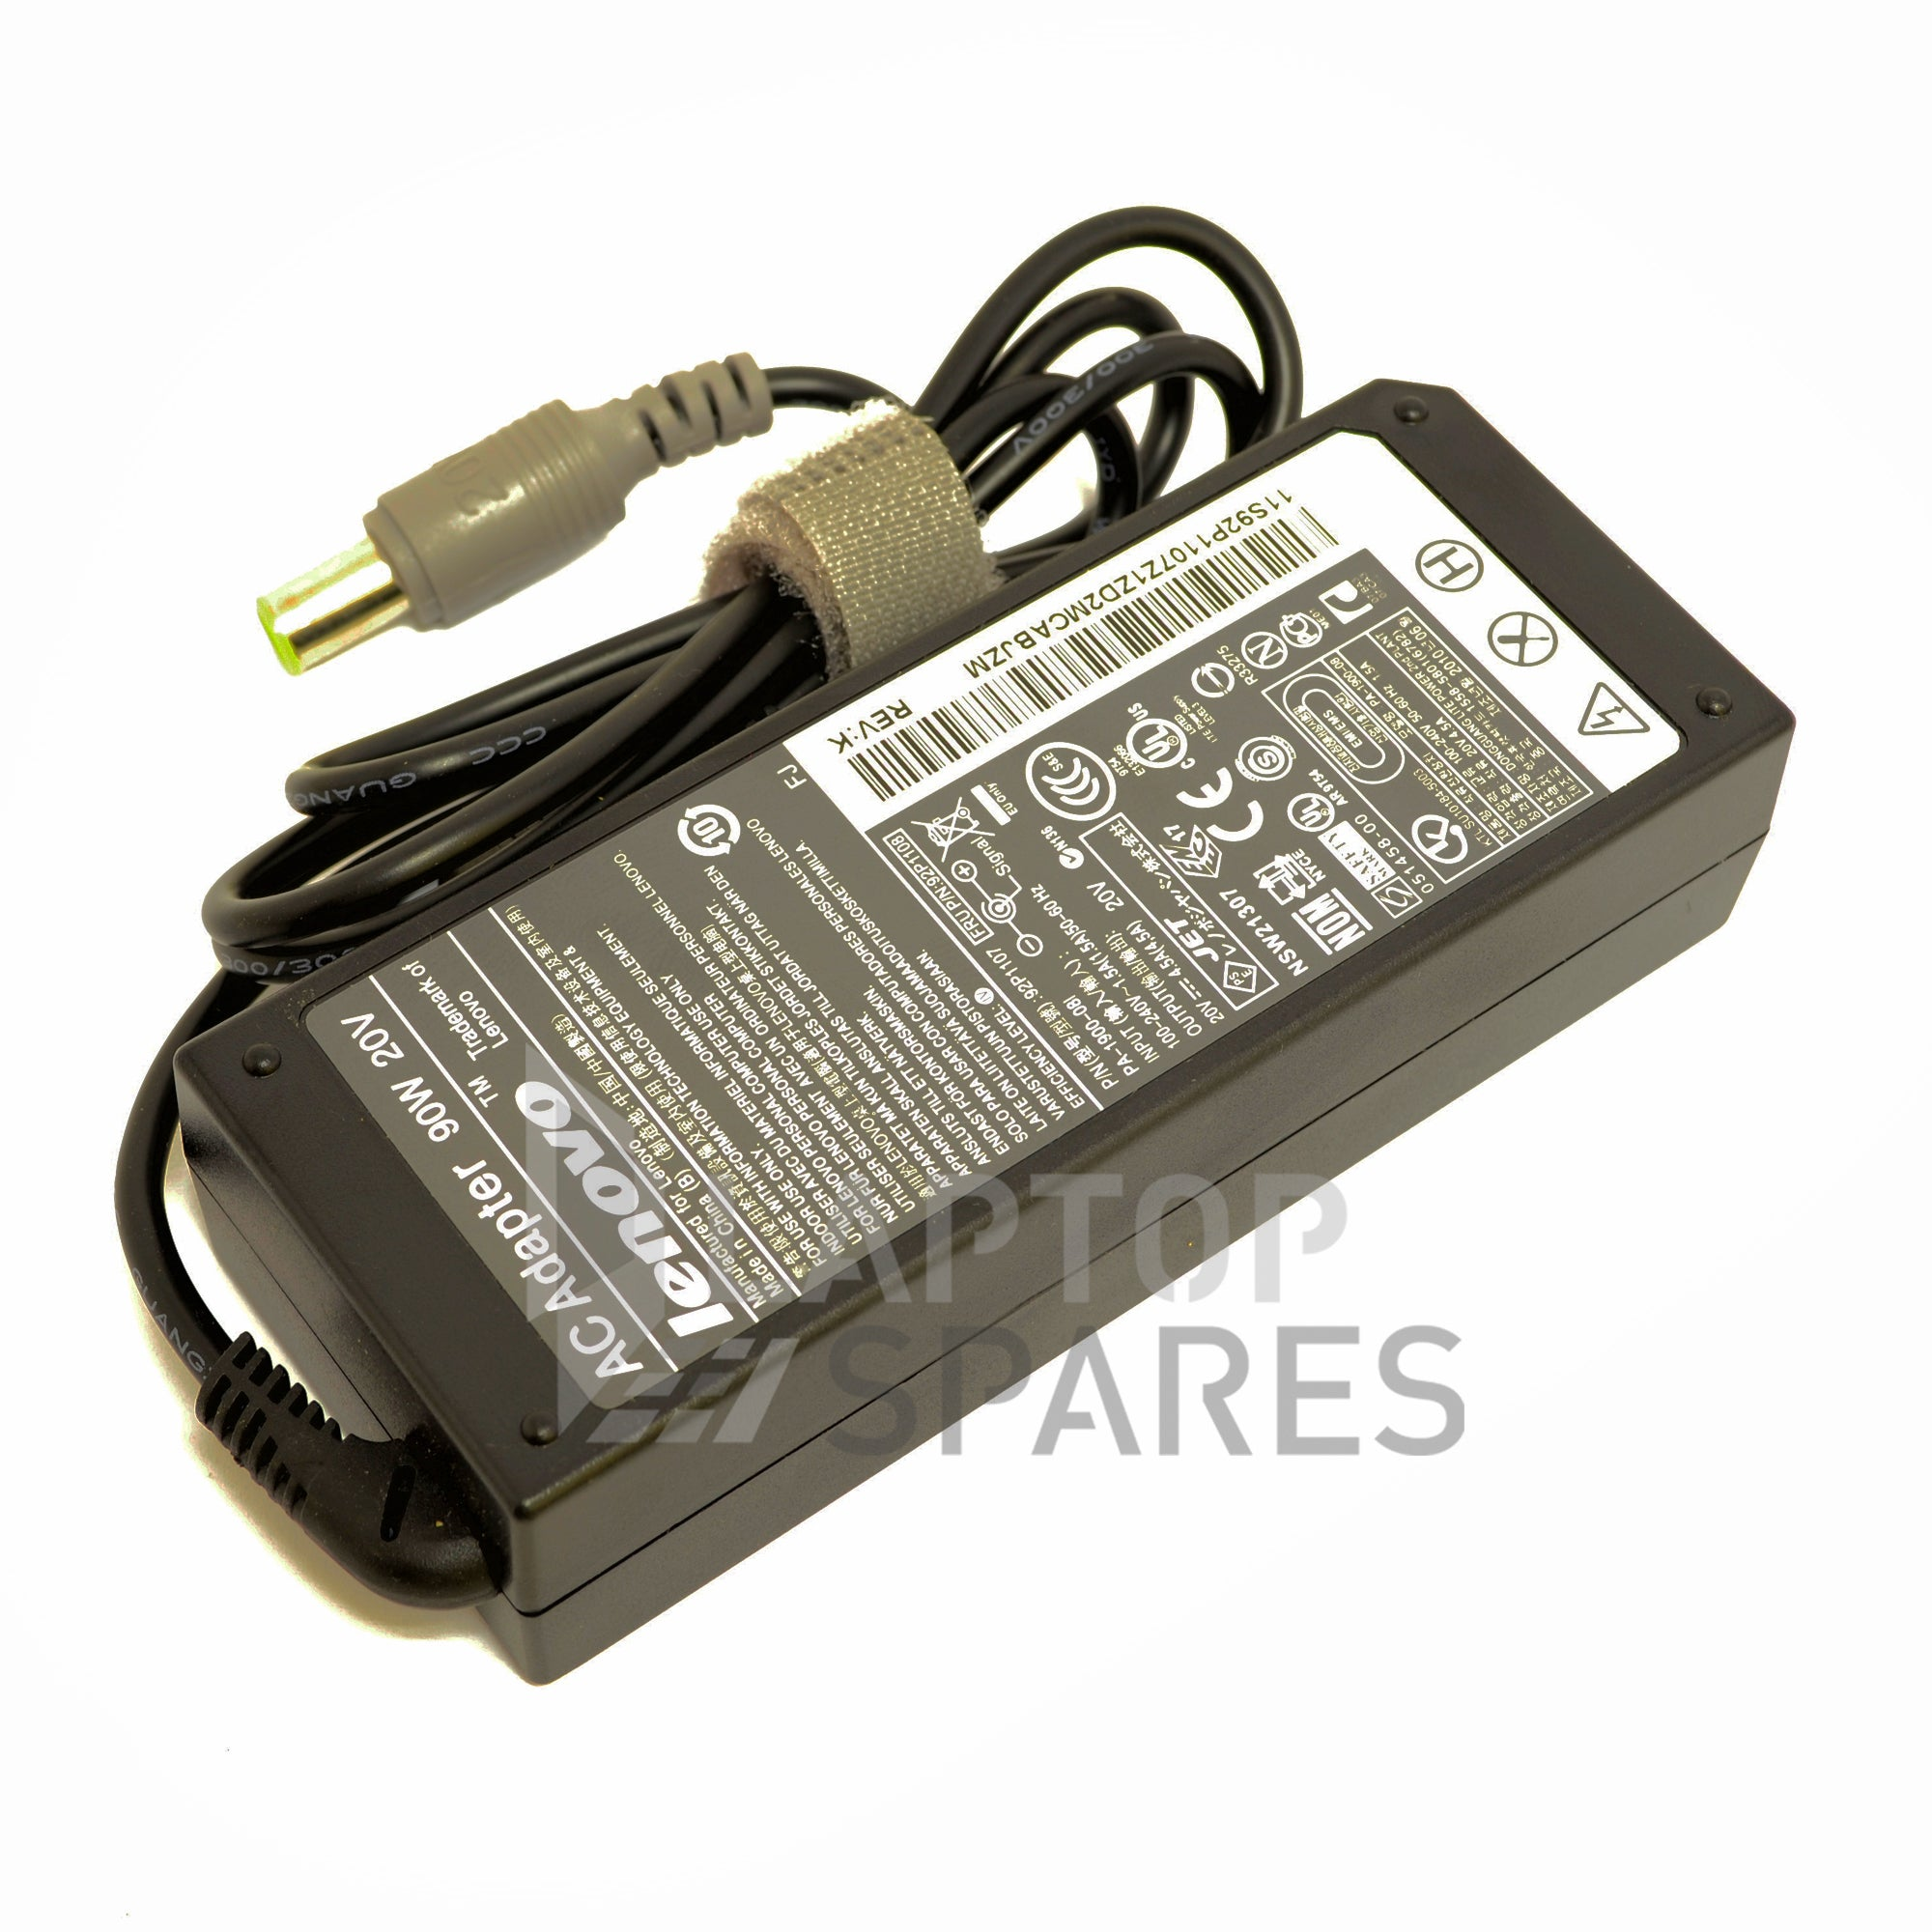 Lenovo ThinkPad Z60t 25136RU 251379U Laptop AC Adapter Charger